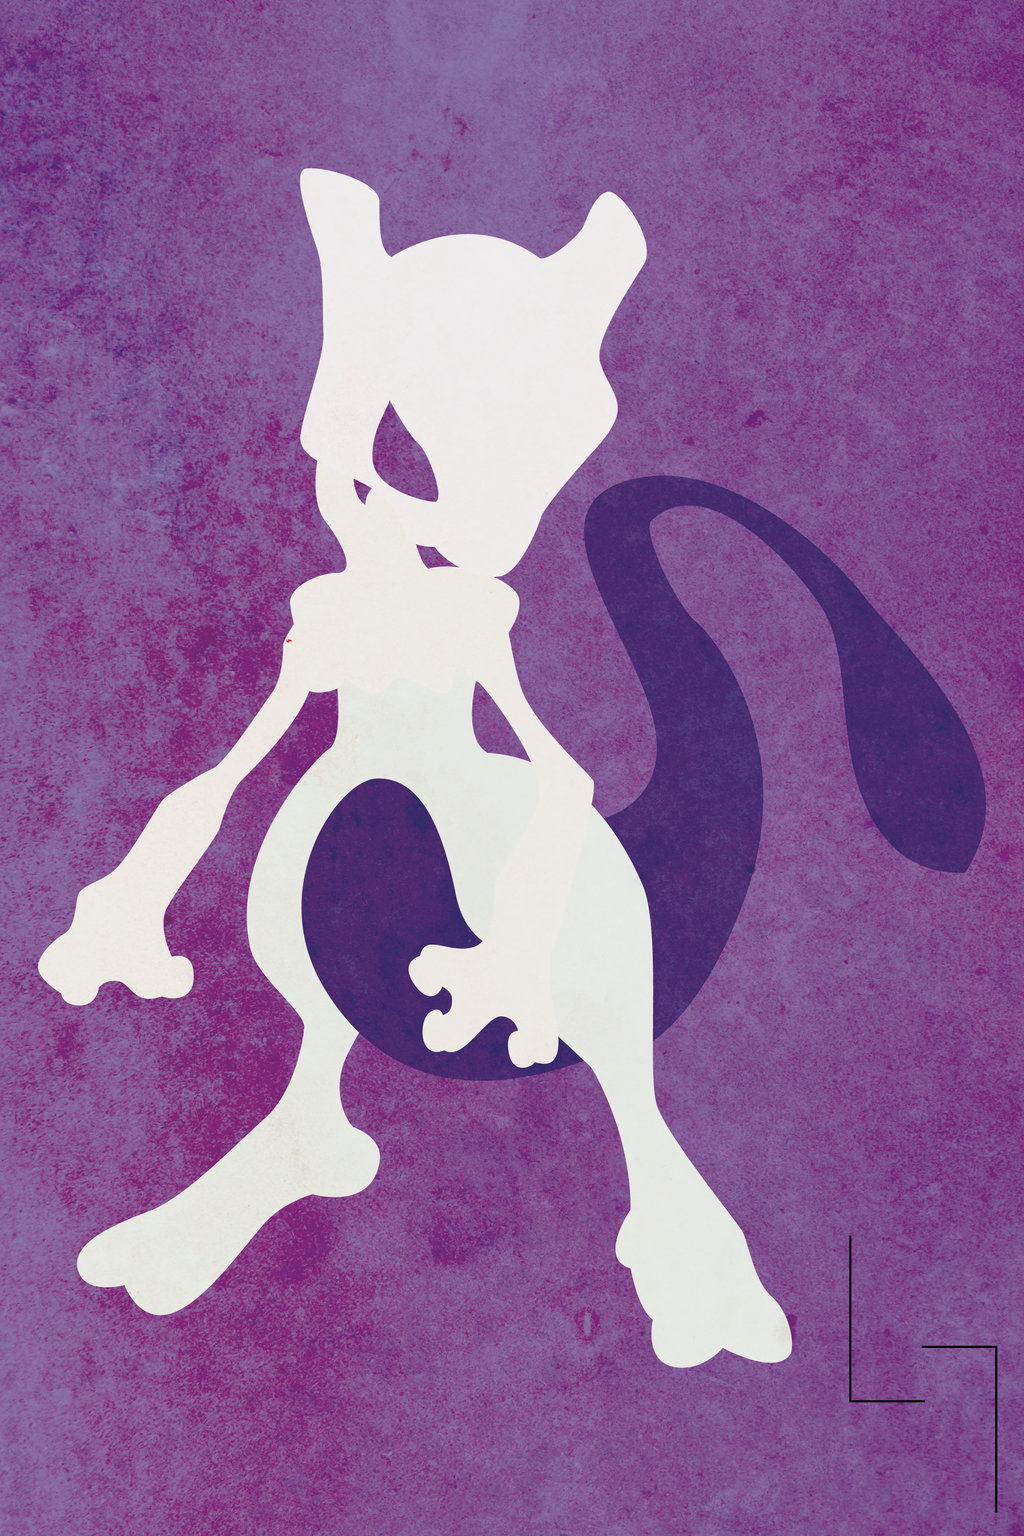 Cute Love Wallpaper For Facebook Download Mewtwo Wallpaper Iphone Gallery